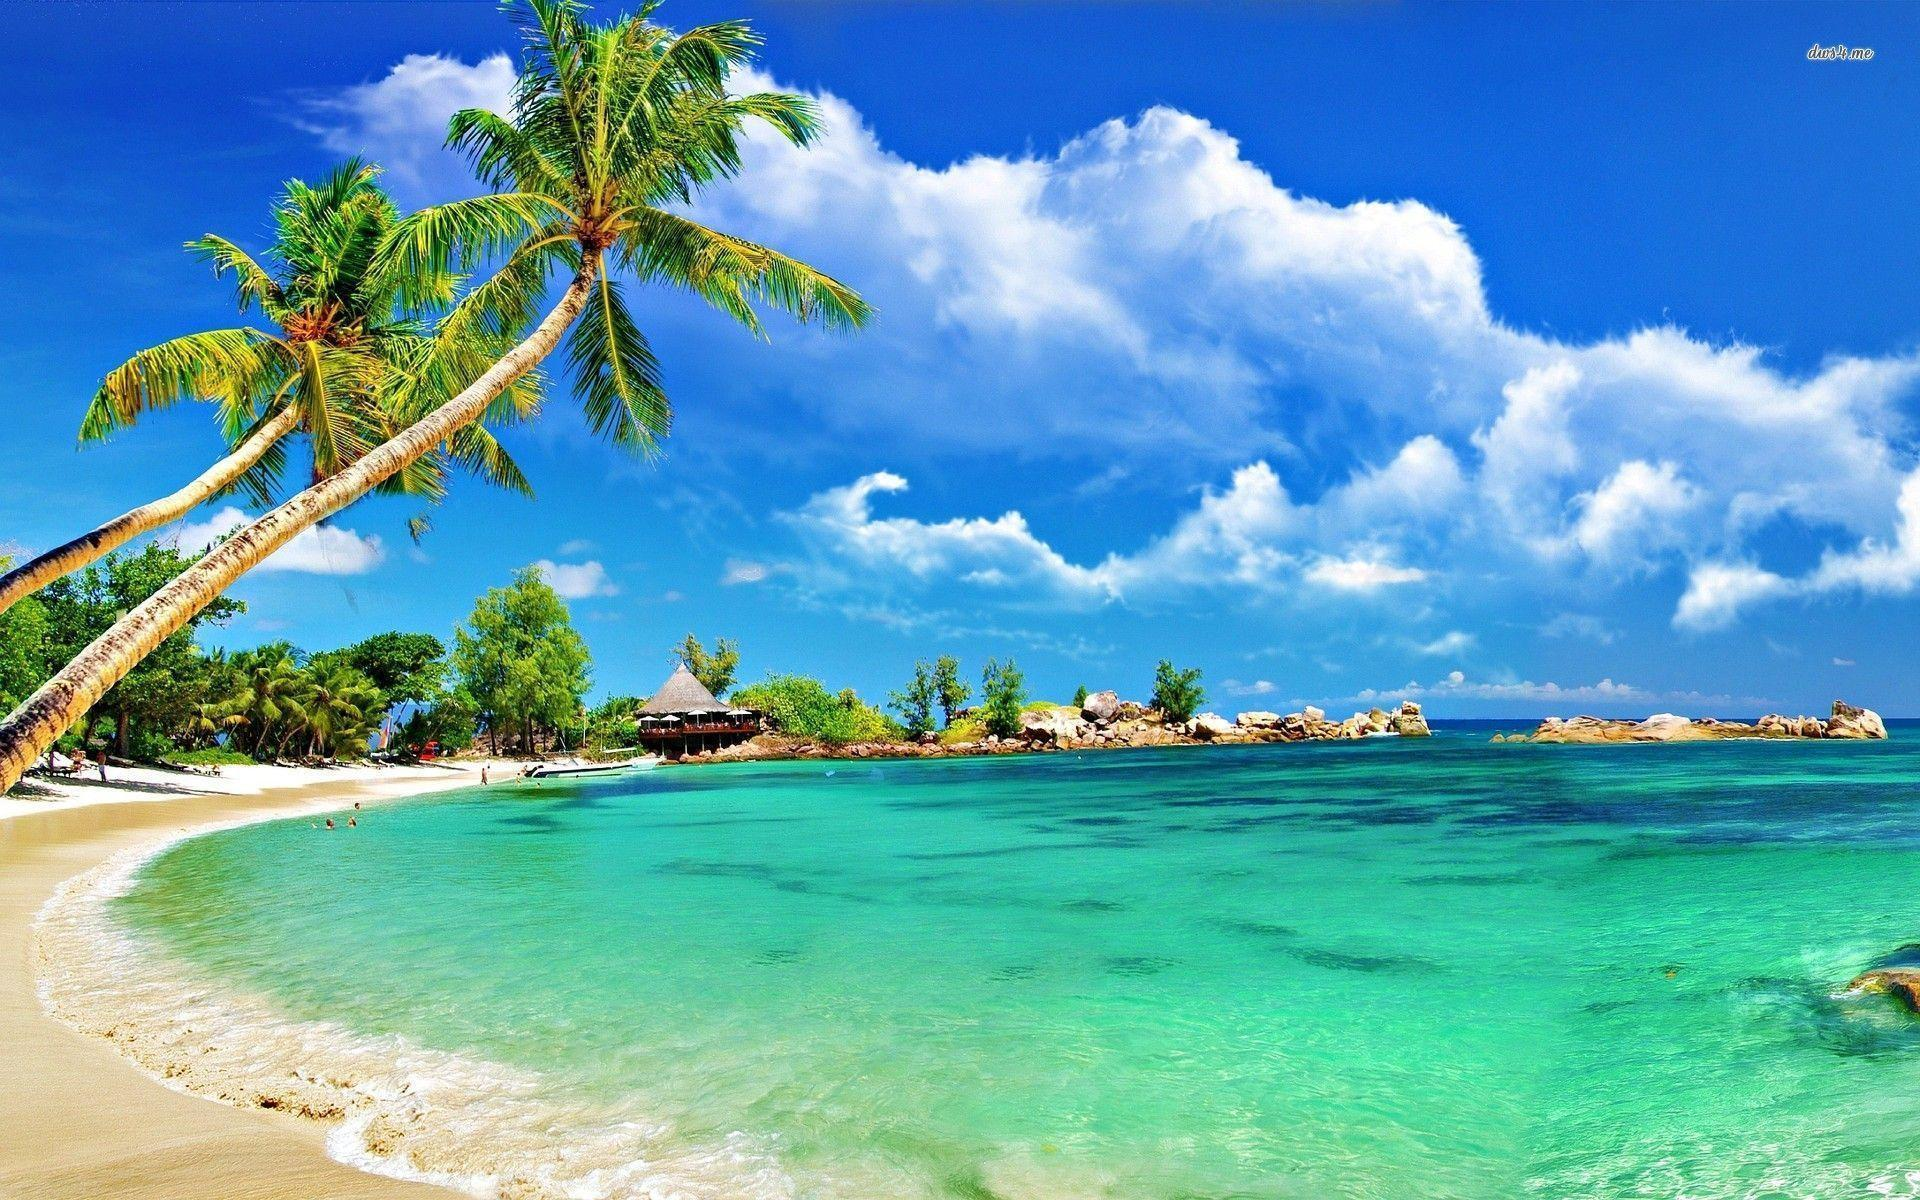 Tropical beach wallpaper - HD Landscape WallpaperHD Landscape ...